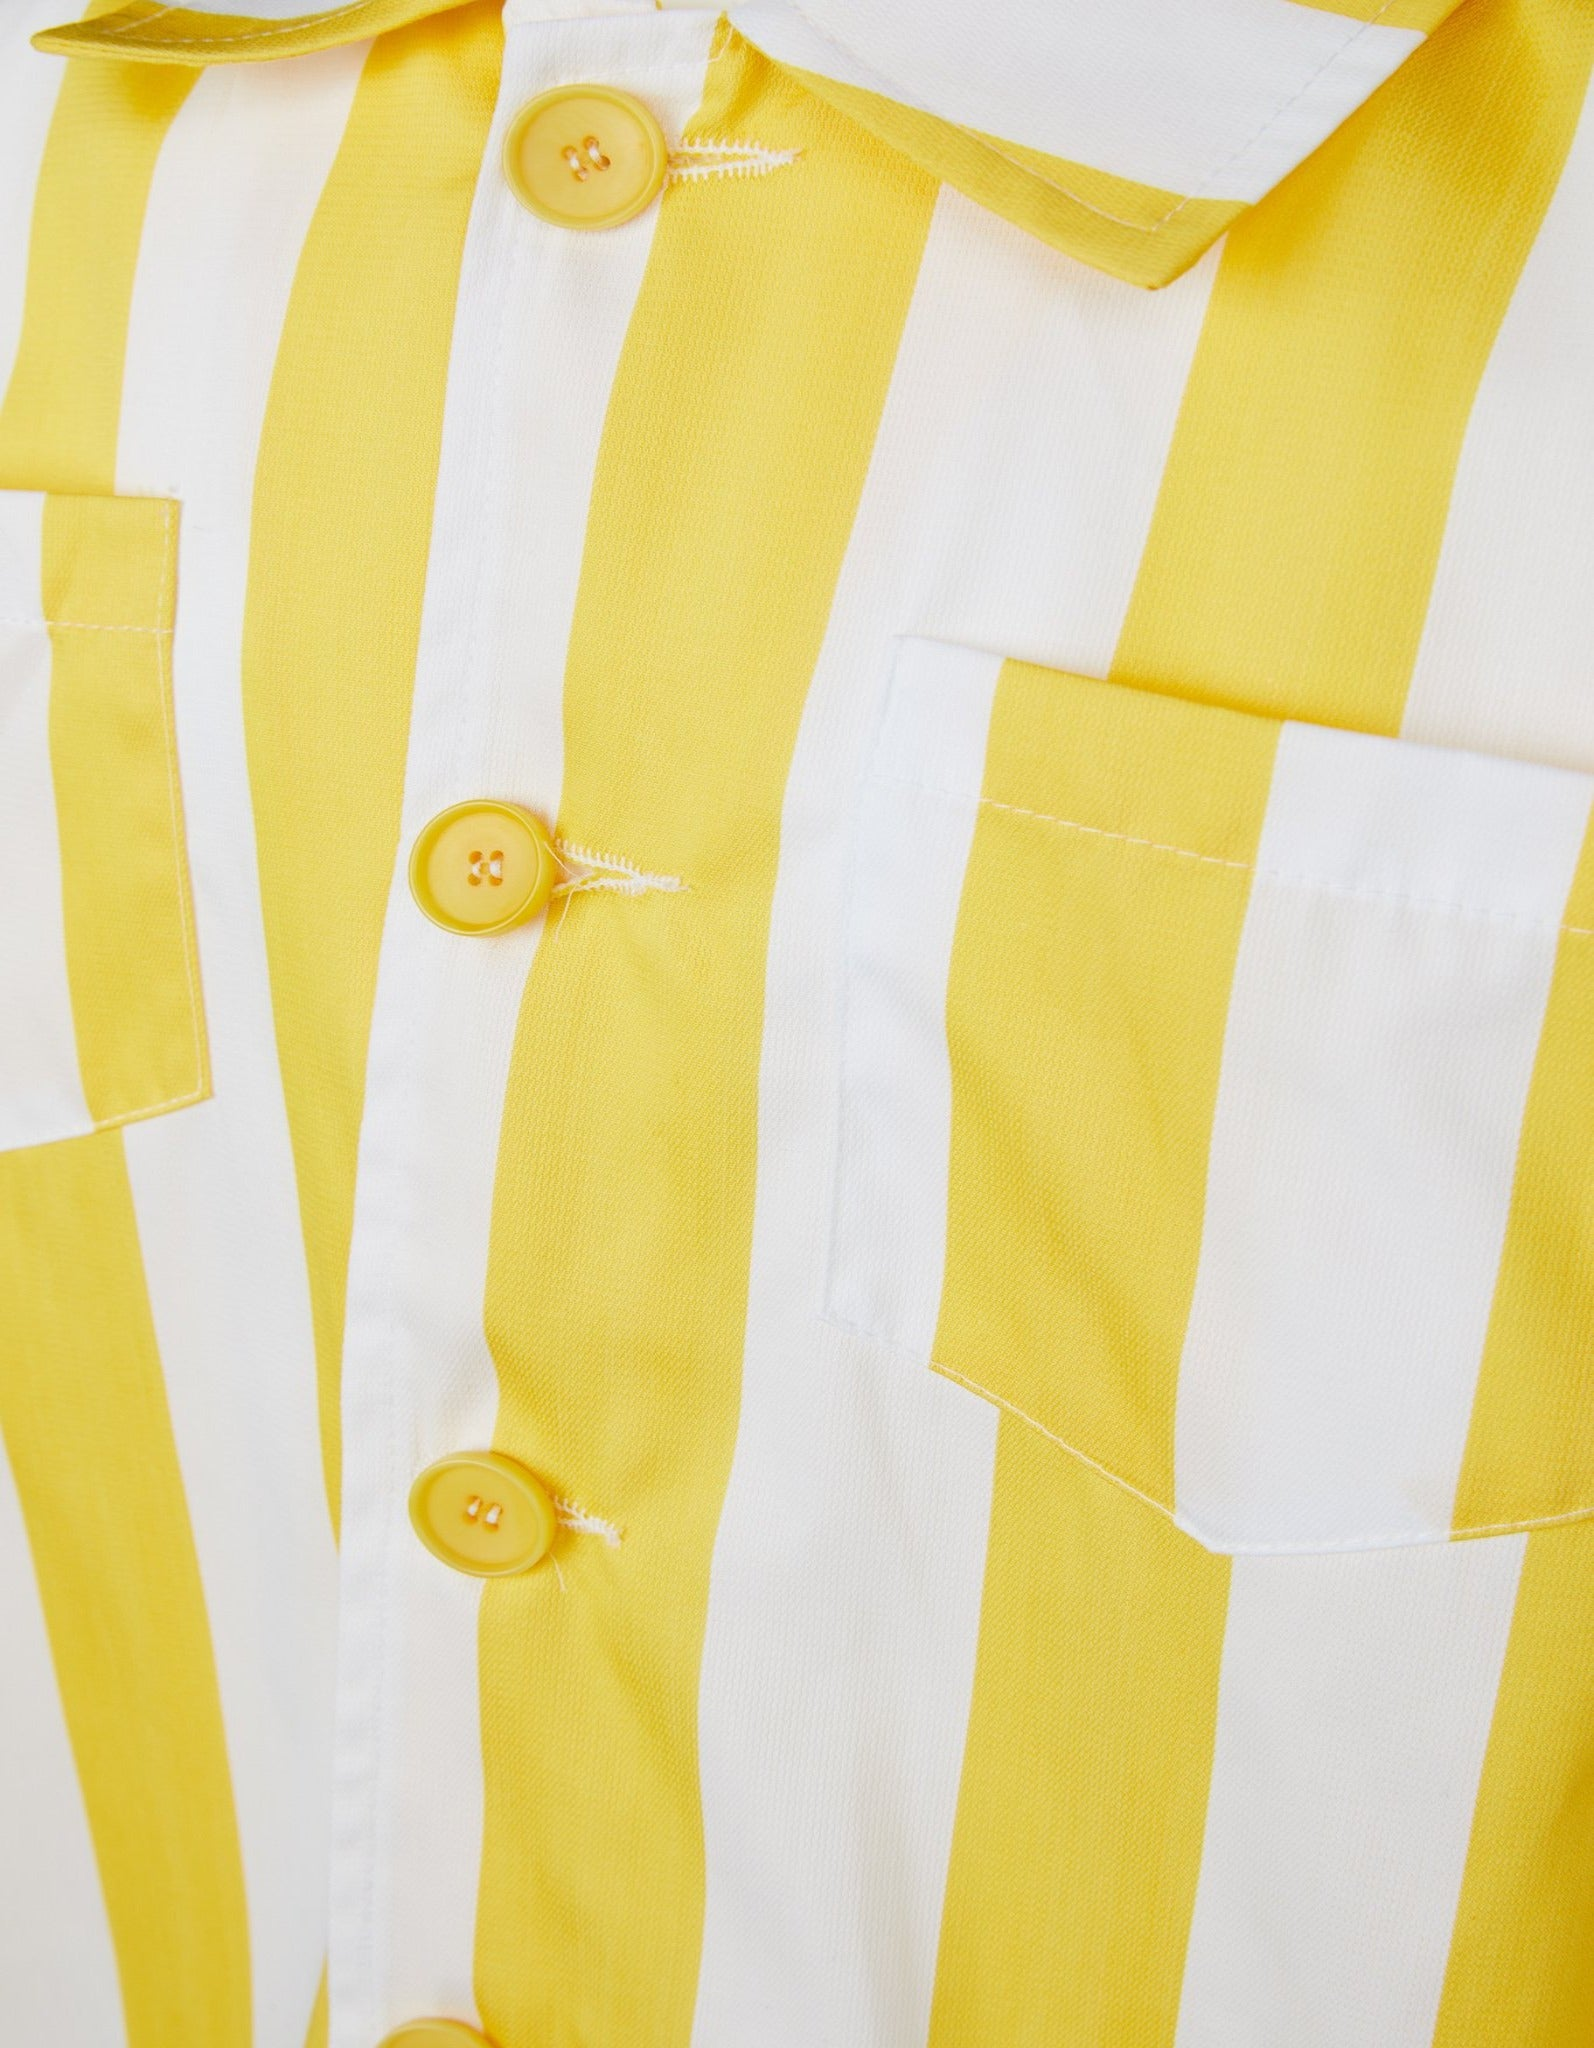 M'A KIDS STRIPED SHIRT IN YELLOW AND WHITE